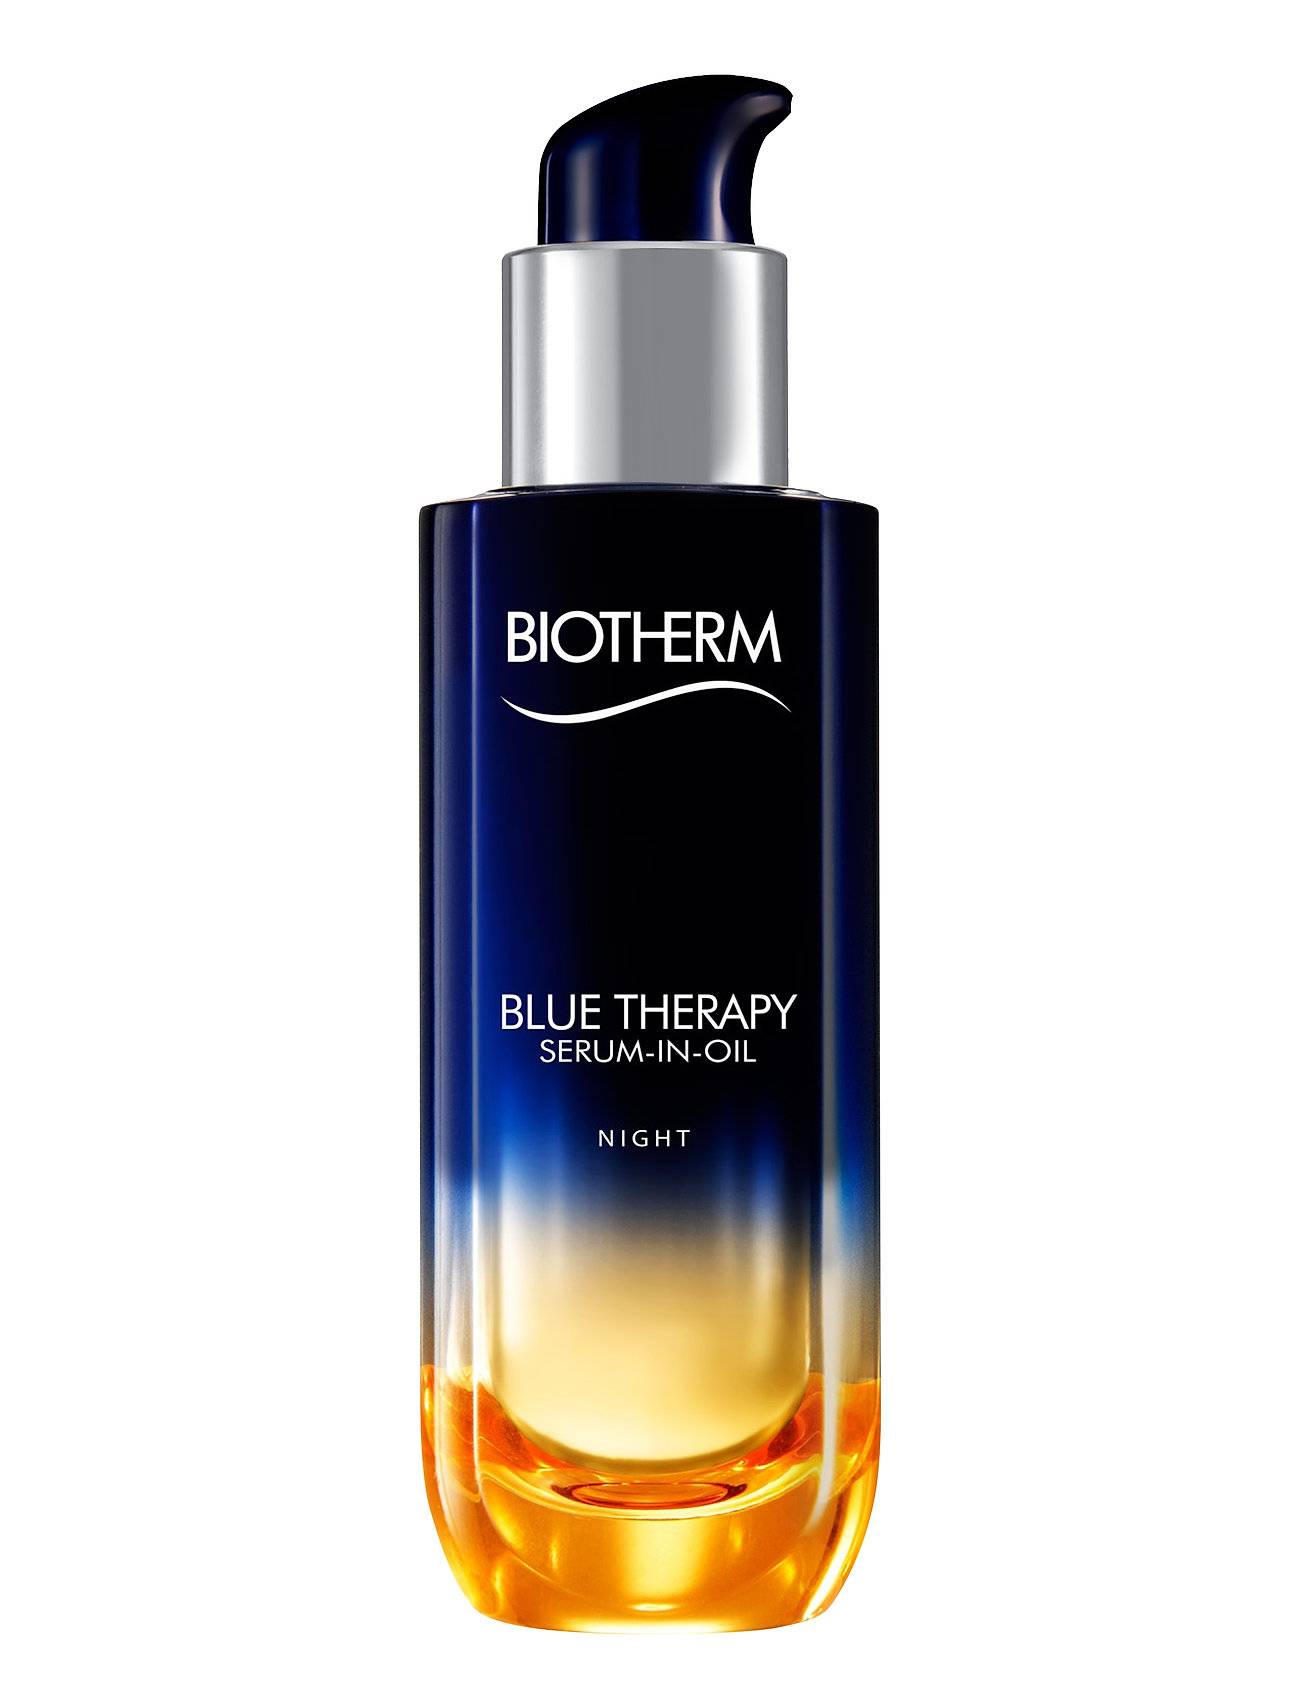 Biotherm Blue Therapy Serum-In-Oil Accelerated 50 Ml